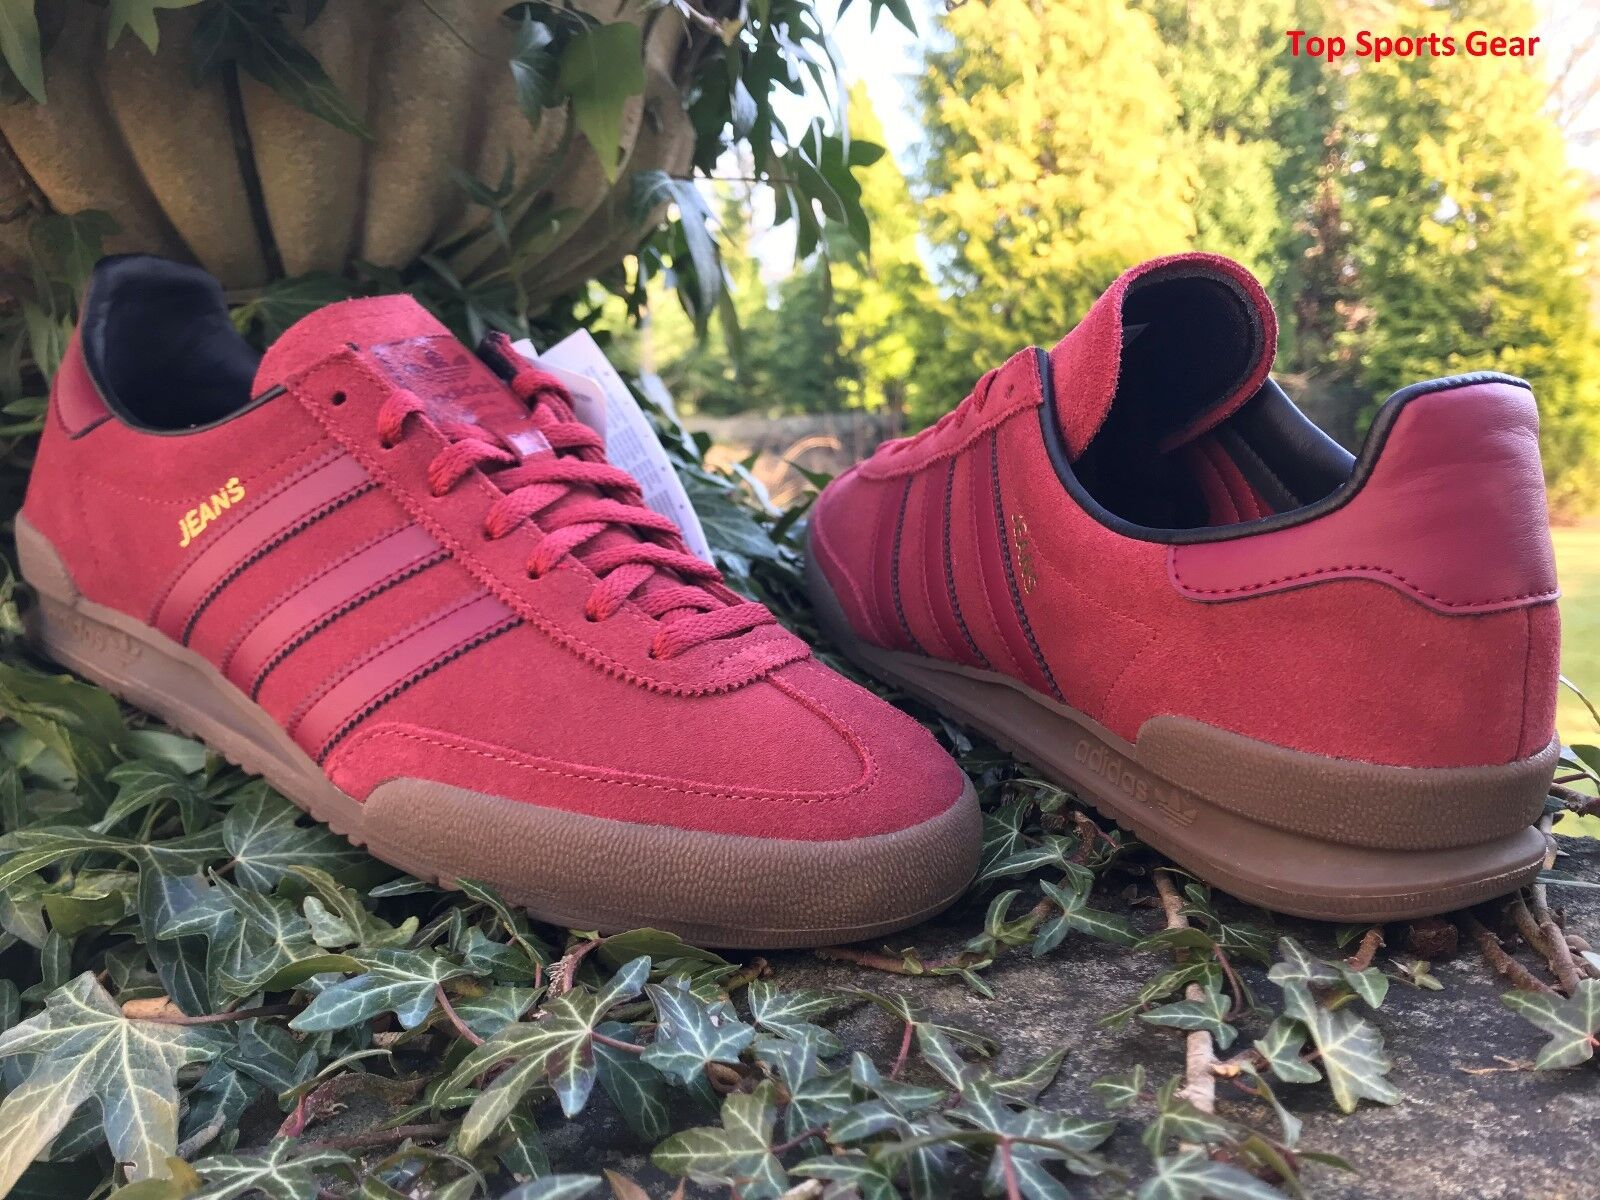 100% genuine united kingdom lower price with adidas Originals Mens Jeans Fashion Trainers Red Sizes UK 9.5 EU 44 Us10